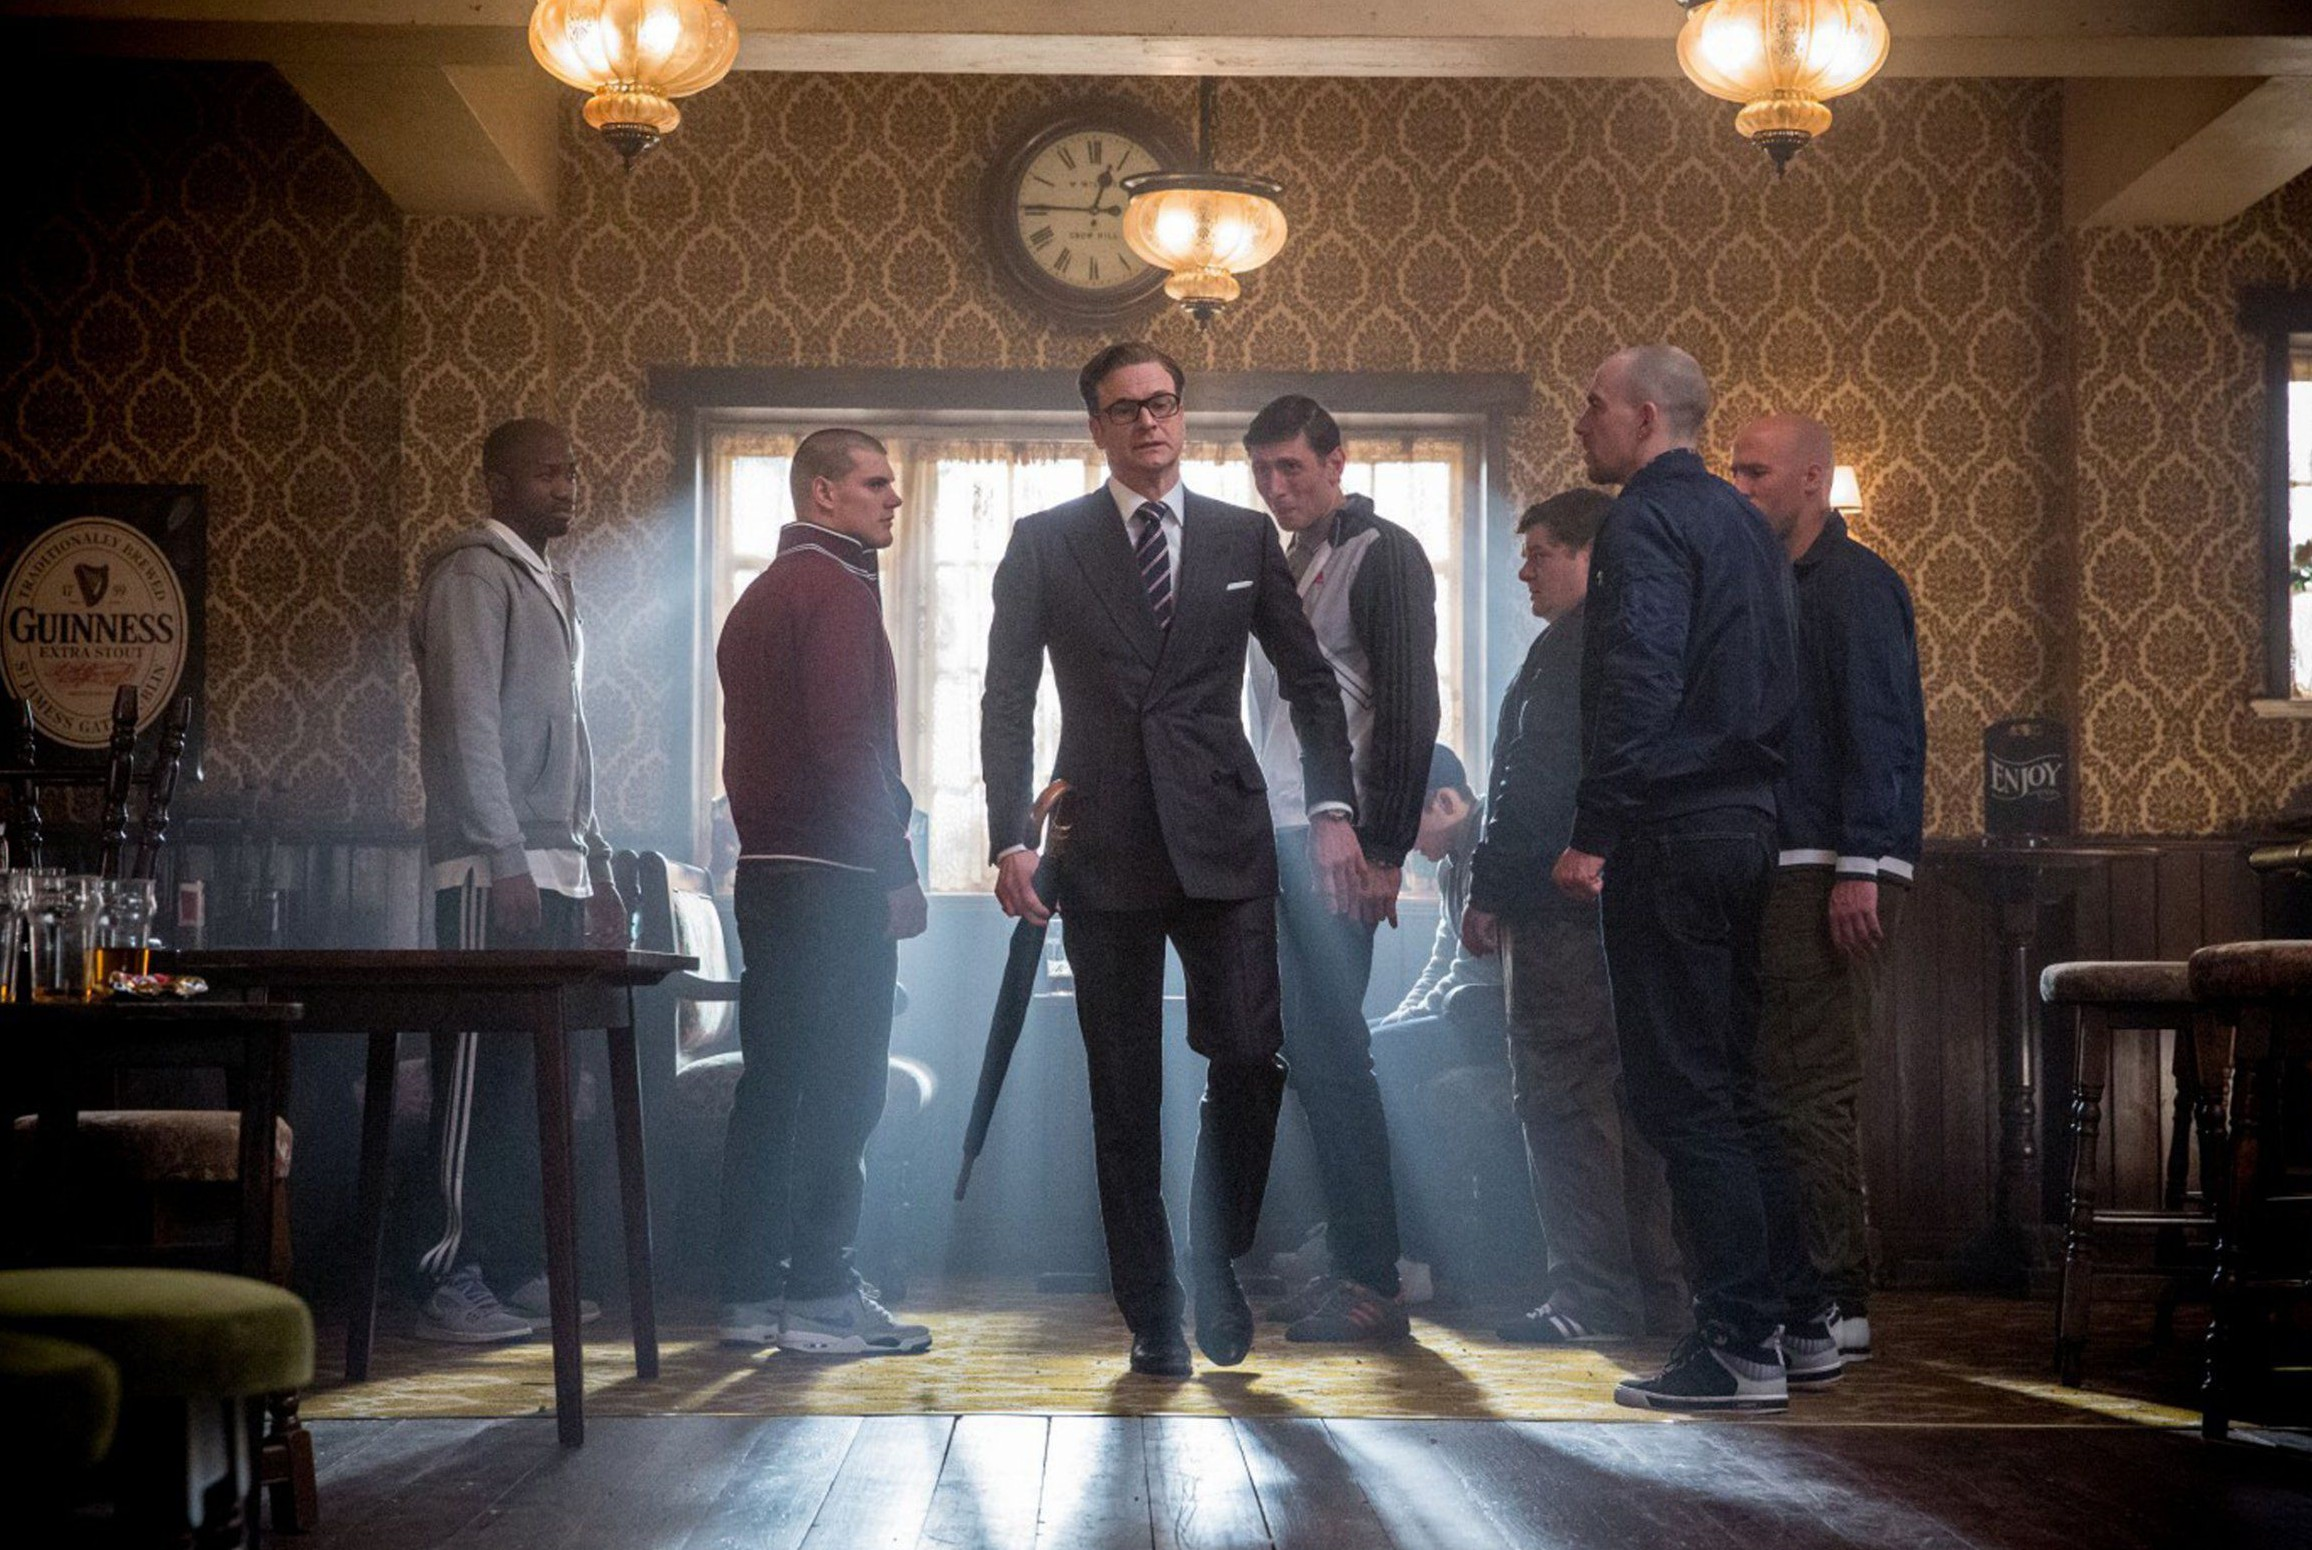 No Merchandising. Editorial Use Only. No Book Cover UsagenMandatory Credit: Photo by Moviestore/REX/Shutterstock (4076881f)nColin Firthn'Kingsman: The Secret Service' Film - 2015nn